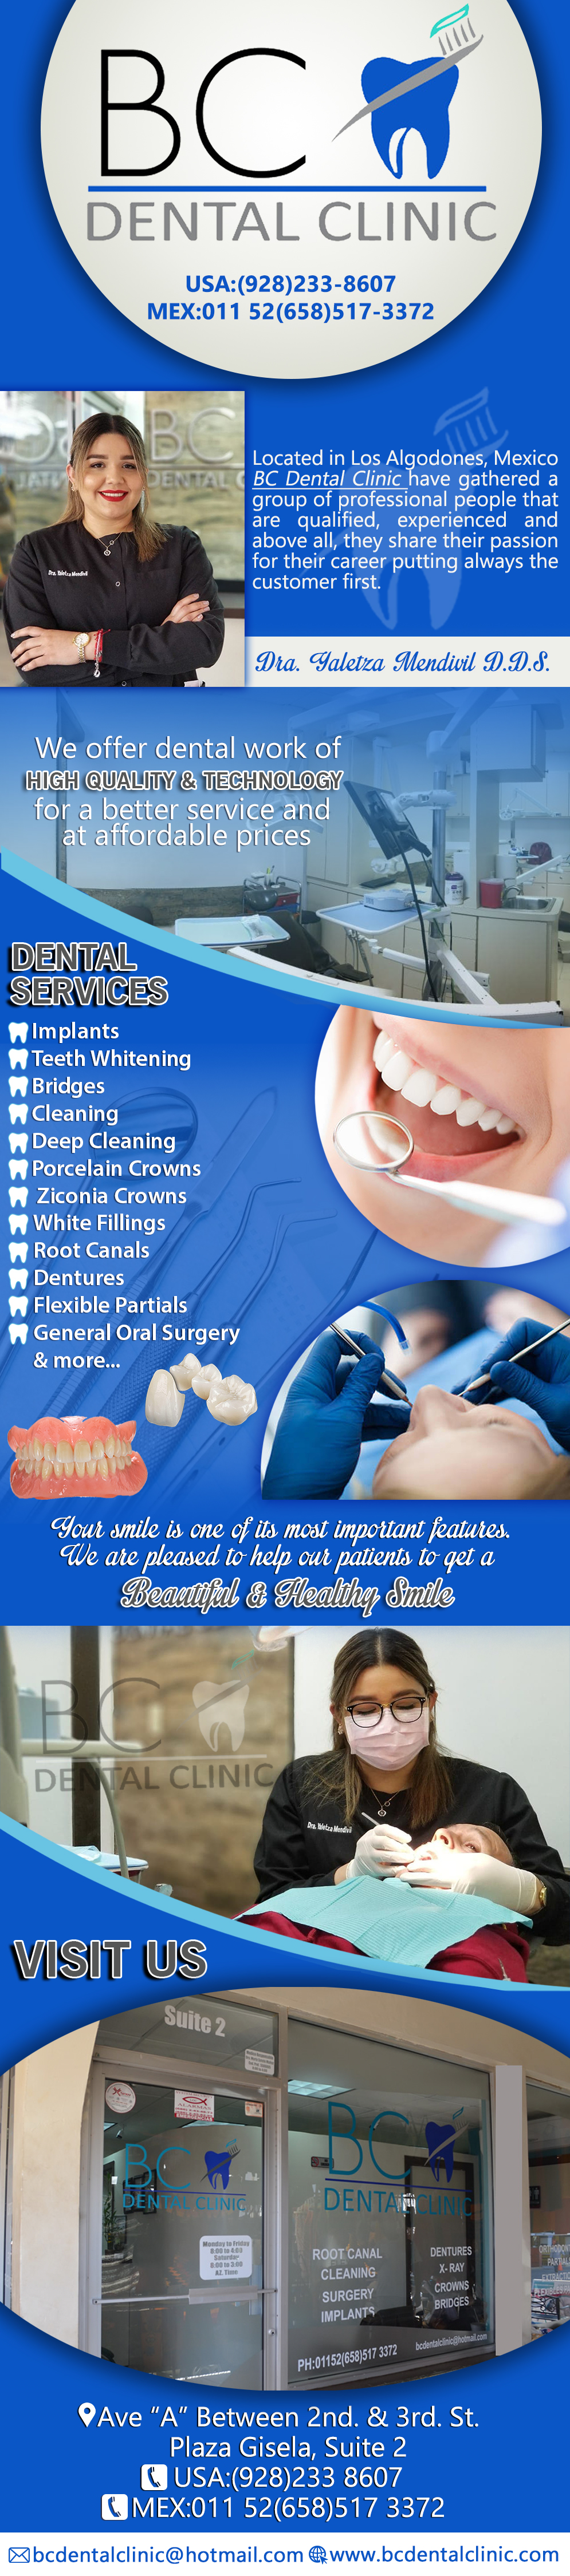 BC Dental Clinic Maria Sotelo Muñoz DDS in Algodones  in Algodones  General dentistry, cosmetic dentistry, periodontics, endodontics, orthodontics and dental implants. Bridges °X-Rays °Porcelain Veneers °Metal Crowns °Dental Bonding °Deep Cleaning °Denture Repair °Traditional Acrylic Dentures °Prescriptions °Root Canals °Metal Bridges °White Fillings °Root Canal Therapy Relines (Hard or Soft) °General Oral Surgeries °Porcelain Crowns °Zirconia Crowns °Flexible Partials °Composite Posts °Teeth Whitening °Extractions °Flexible Parials Implants °Porcelain Veneers °Wisdom Tooth Extractions °Metal Posts °Traditional Cleaning °MetalAcrylic Partials °Immediate Upper and Lower Dentures (Alveoplasty)     general dentistry, cosmetic dentistry, periodontics, endodontics, orthodontics and dental implants. Bridges °X-Rays °Porcelain Veneers °Metal Crowns °Dental Bonding °Deep Cleaning °Denture Repair °Traditional Acrylic Dentures °Prescriptions °Root Canals °Metal Bridges °White Fillings °Root Canal Therapy Relines (Hard or Soft) °General Oral Surgeries °Porcelain Crowns °Flexible Partials °Composite Posts °Teeth Whitening °Extractions °Flexible Parials Implants °Porcelain Veneers °Wisdom Tooth Extractions °Metal Posts °Traditional Cleaning °MetalAcrylic Partials °Immediate Upper and Lower Dentures (Alveoplasty)